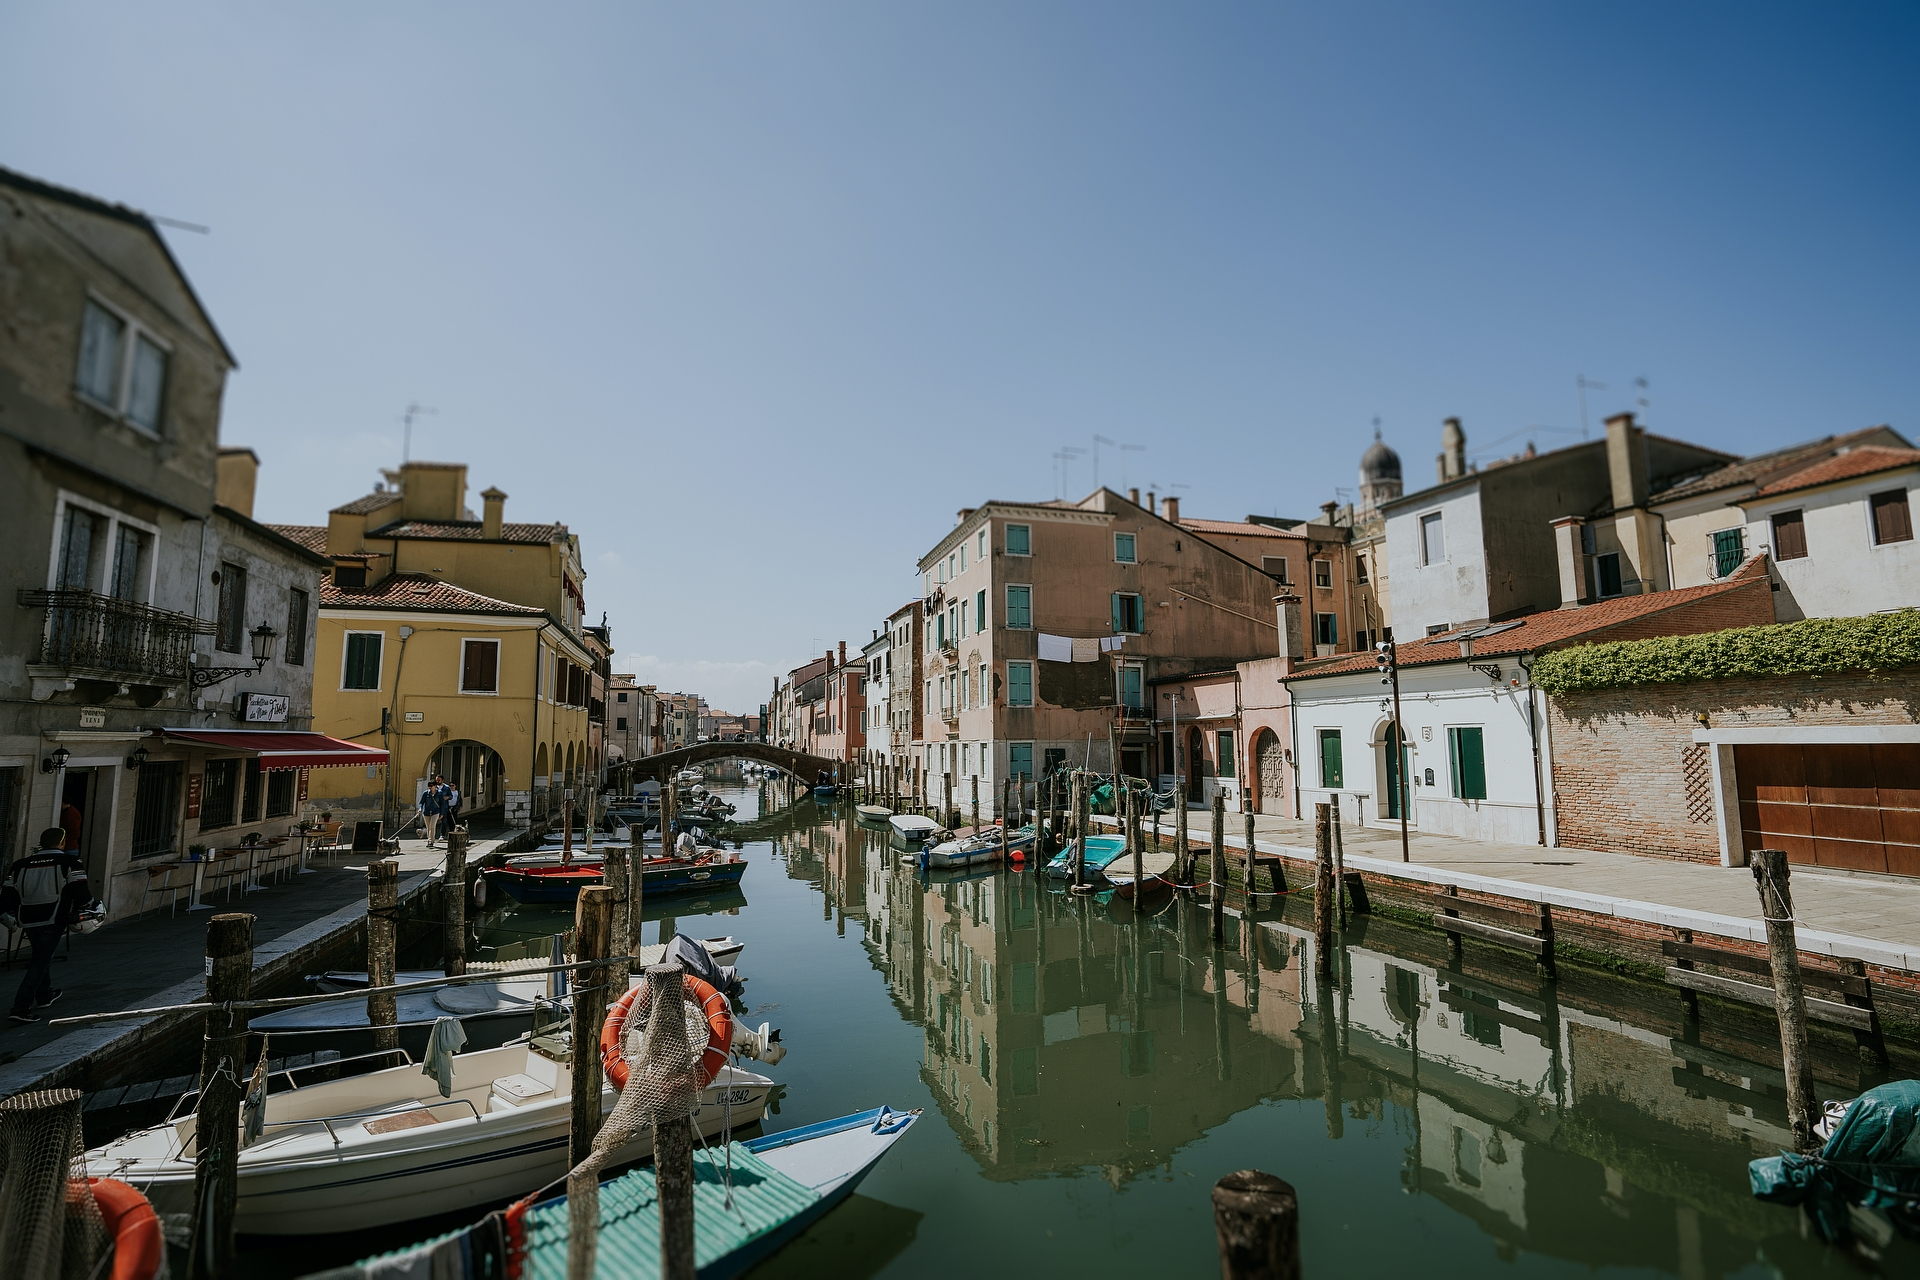 Chioggia, Venice Elopement Photography of Italy | This is the town of Chioggia where they got married